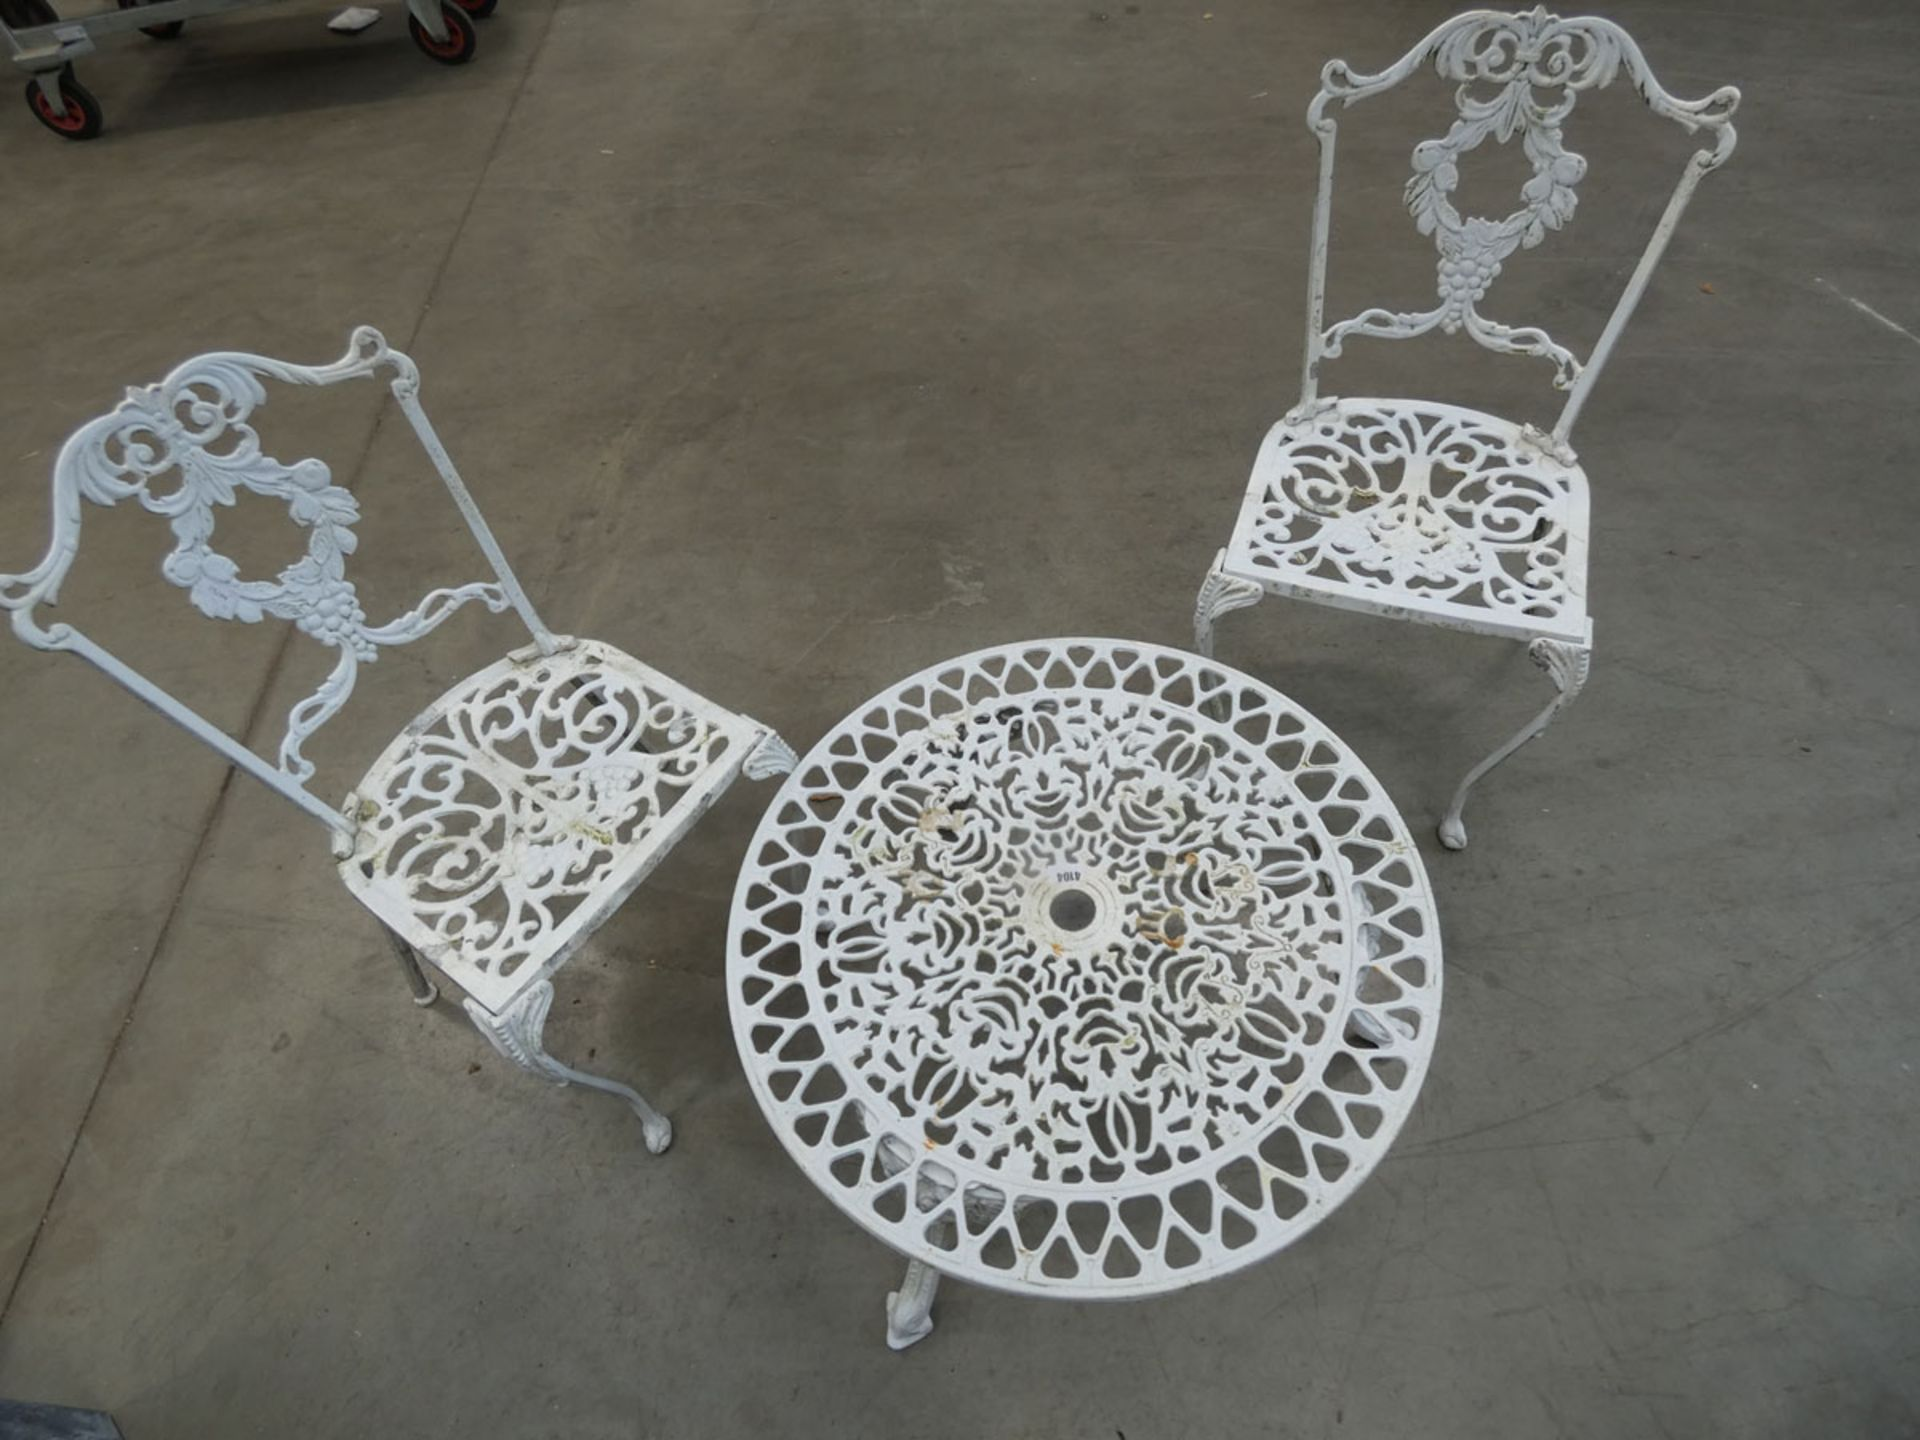 Low round metal garden table and 2 matching chairs - Image 2 of 2